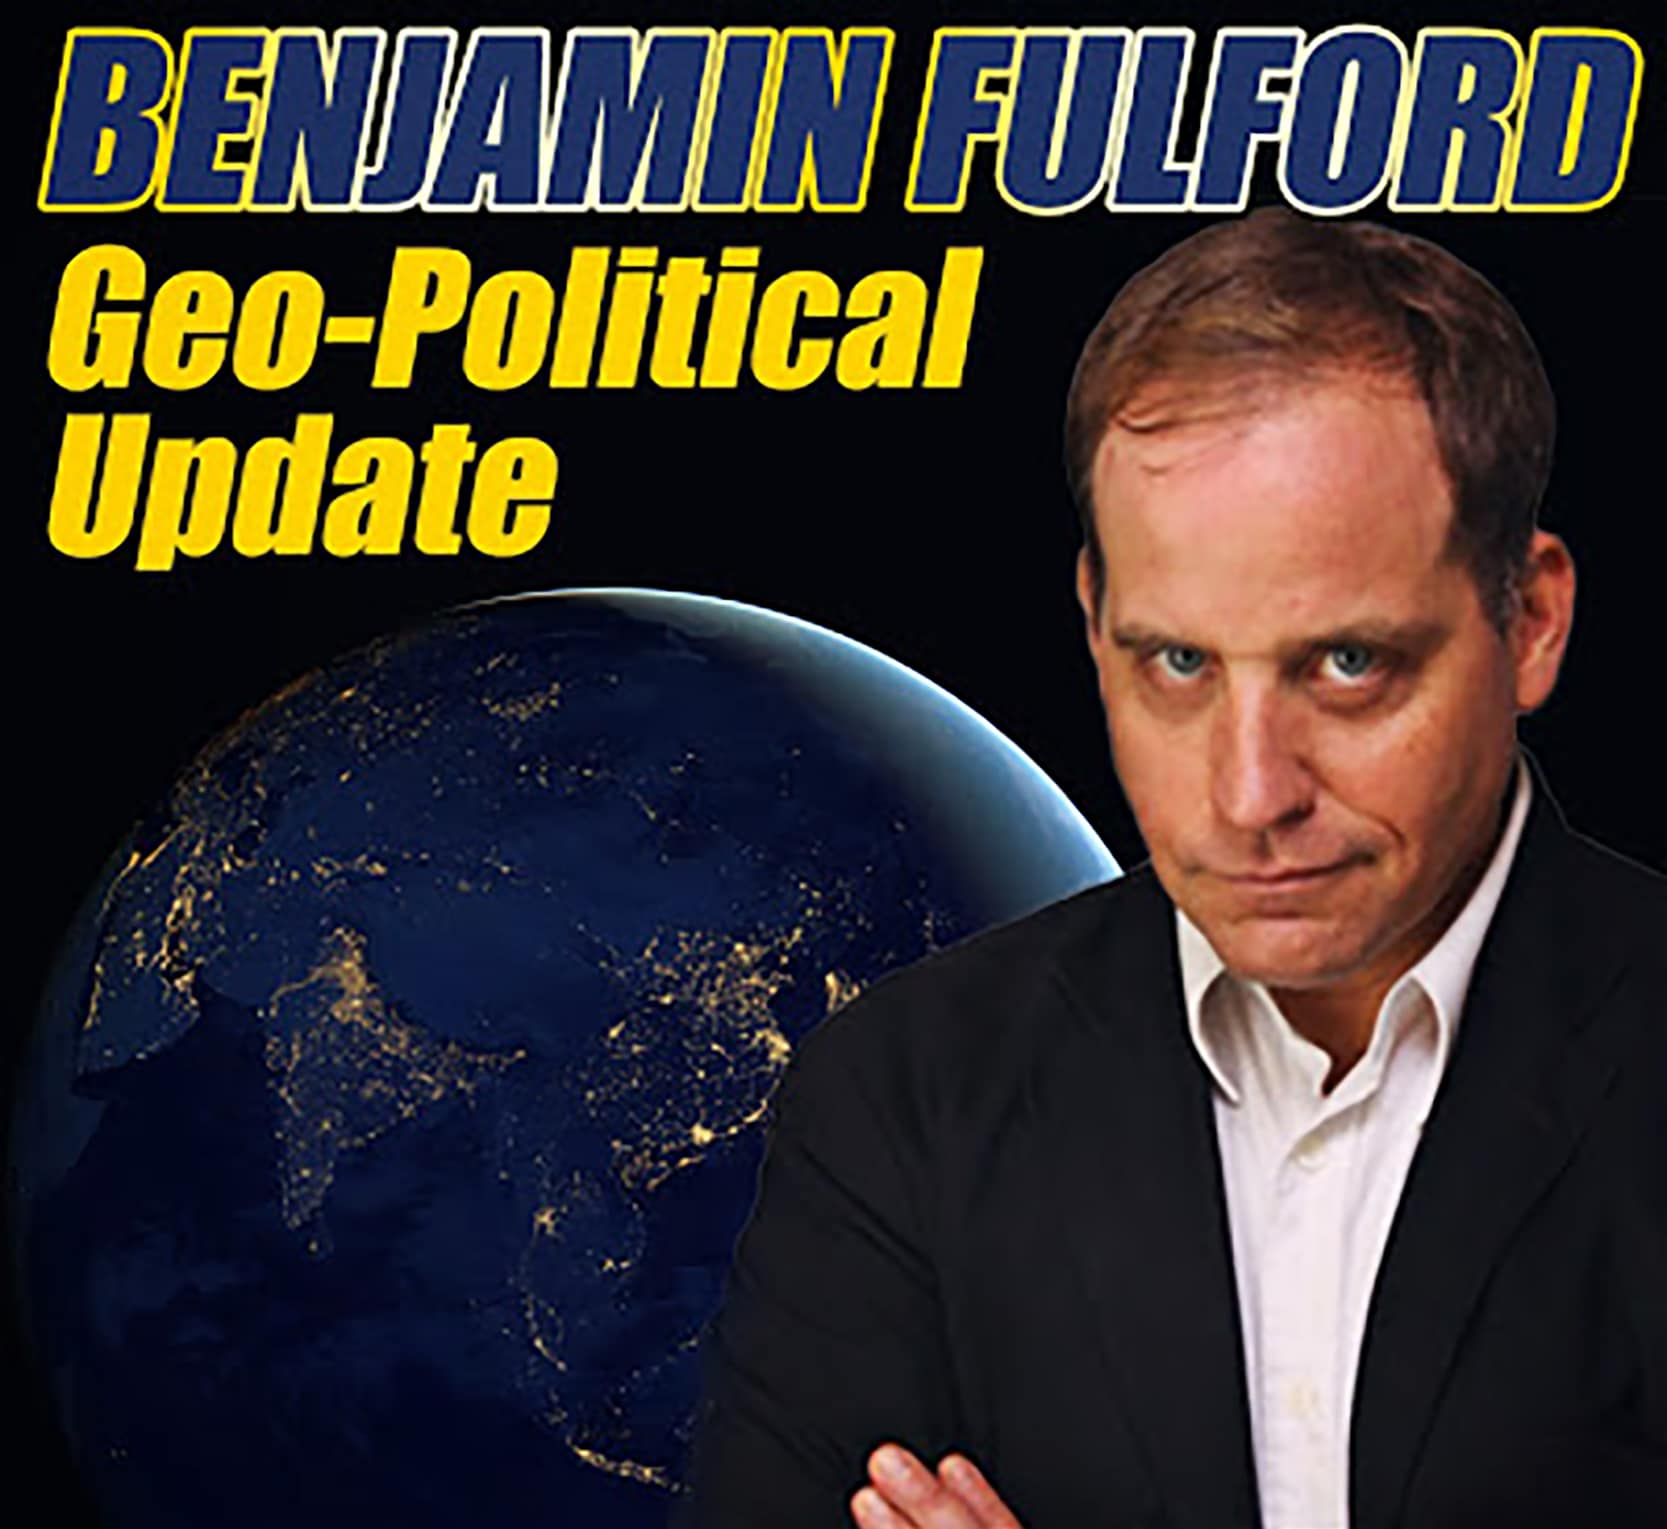 Benjamin-Fulford-Geo-Political-Updates-NEW-2.jpg